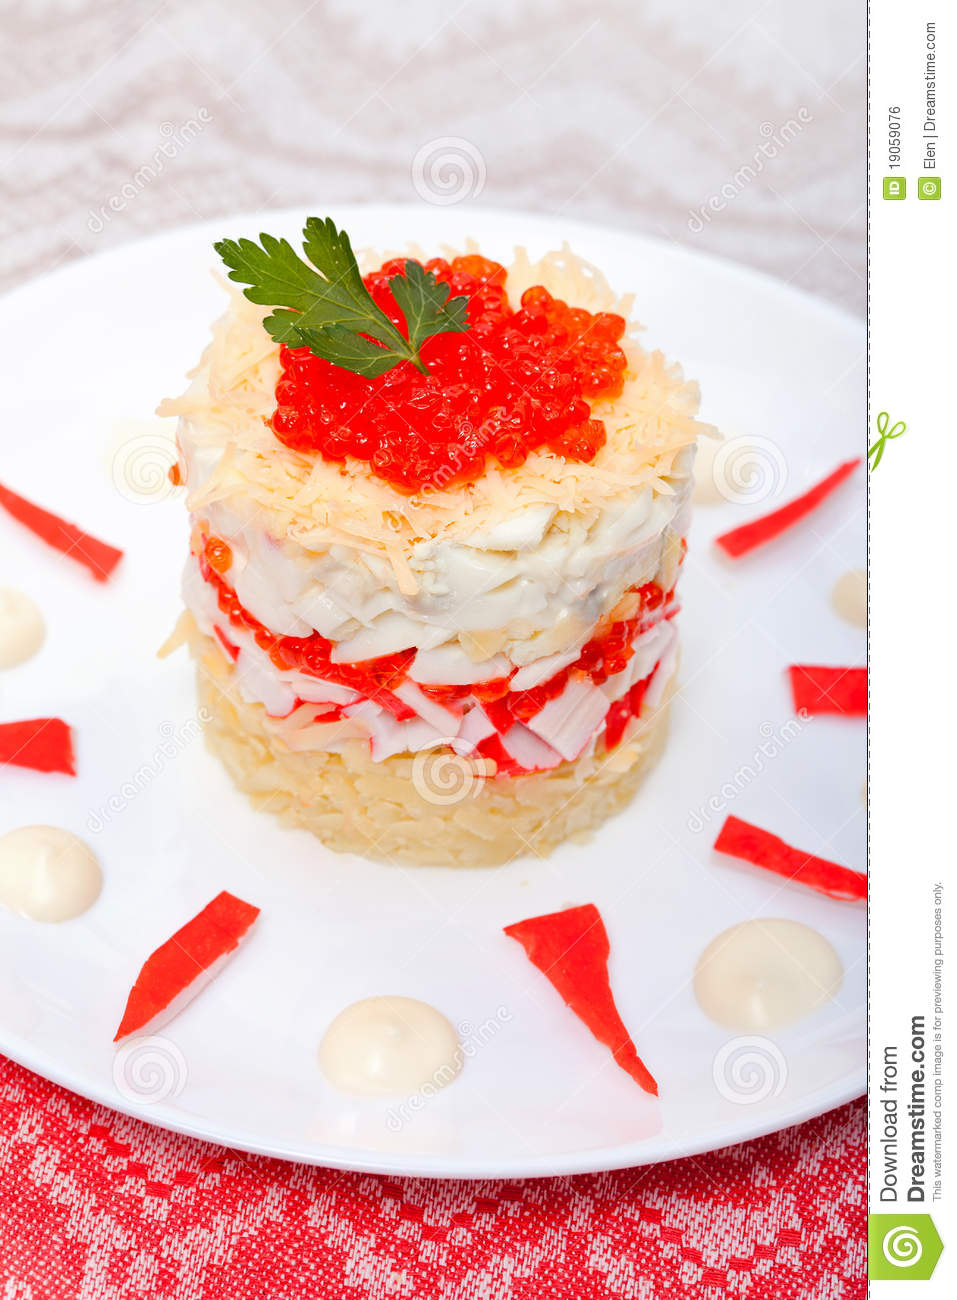 Download Salad Of Crabs With Red Caviar Stock Photo - Image of decorate, kitchen: 19059076